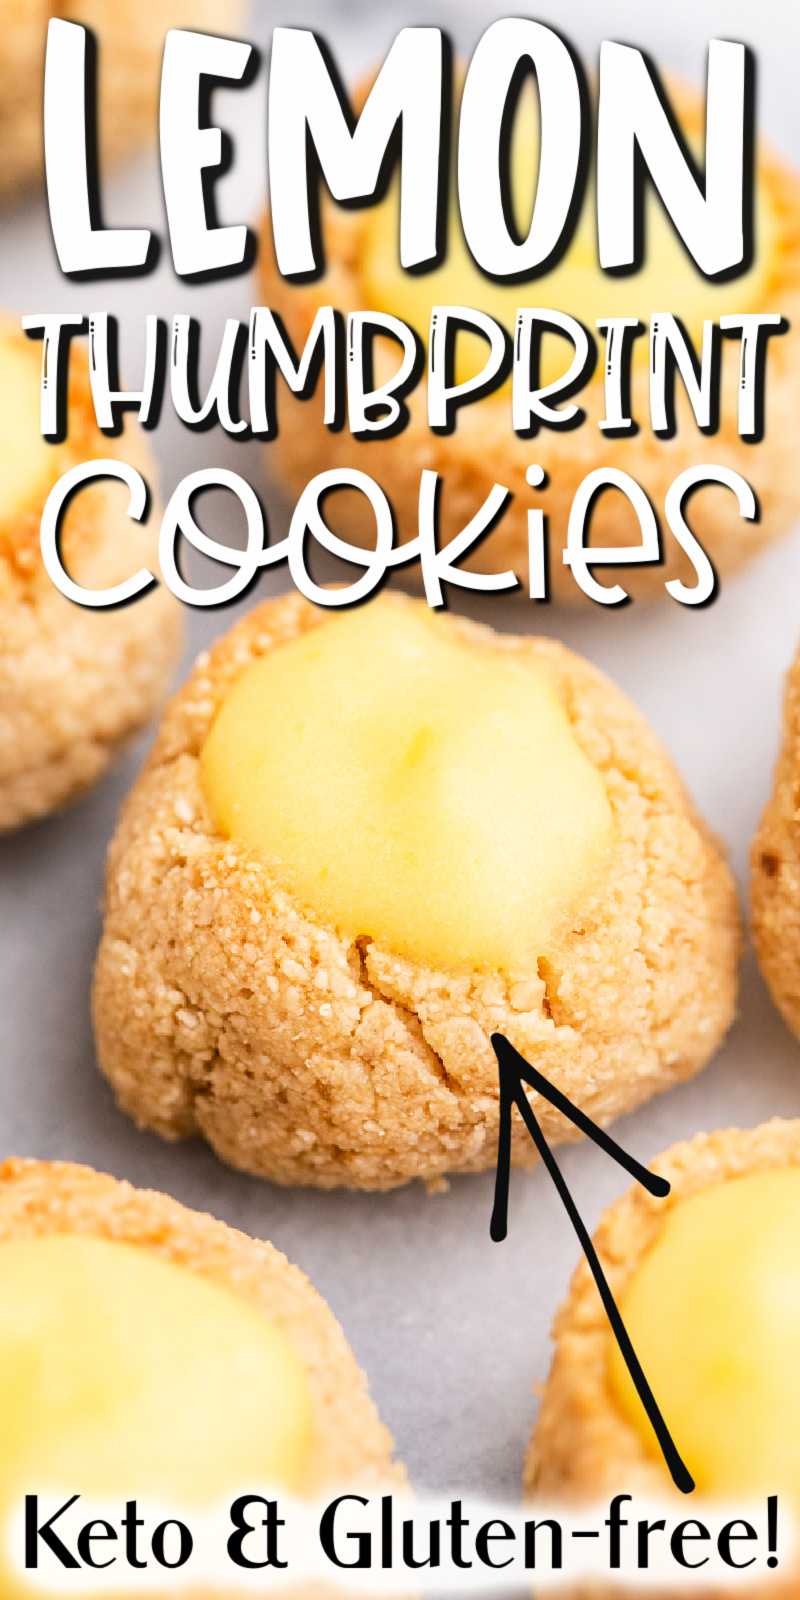 Keto Lemon Thumbprint Cookies - These keto lemon thumbprint cookies are the perfect addition to your spring party and picnic menu! #keto #lowcarb #glutenfree #sugarfree #lemon #thumbprint #cookies #spring #easter